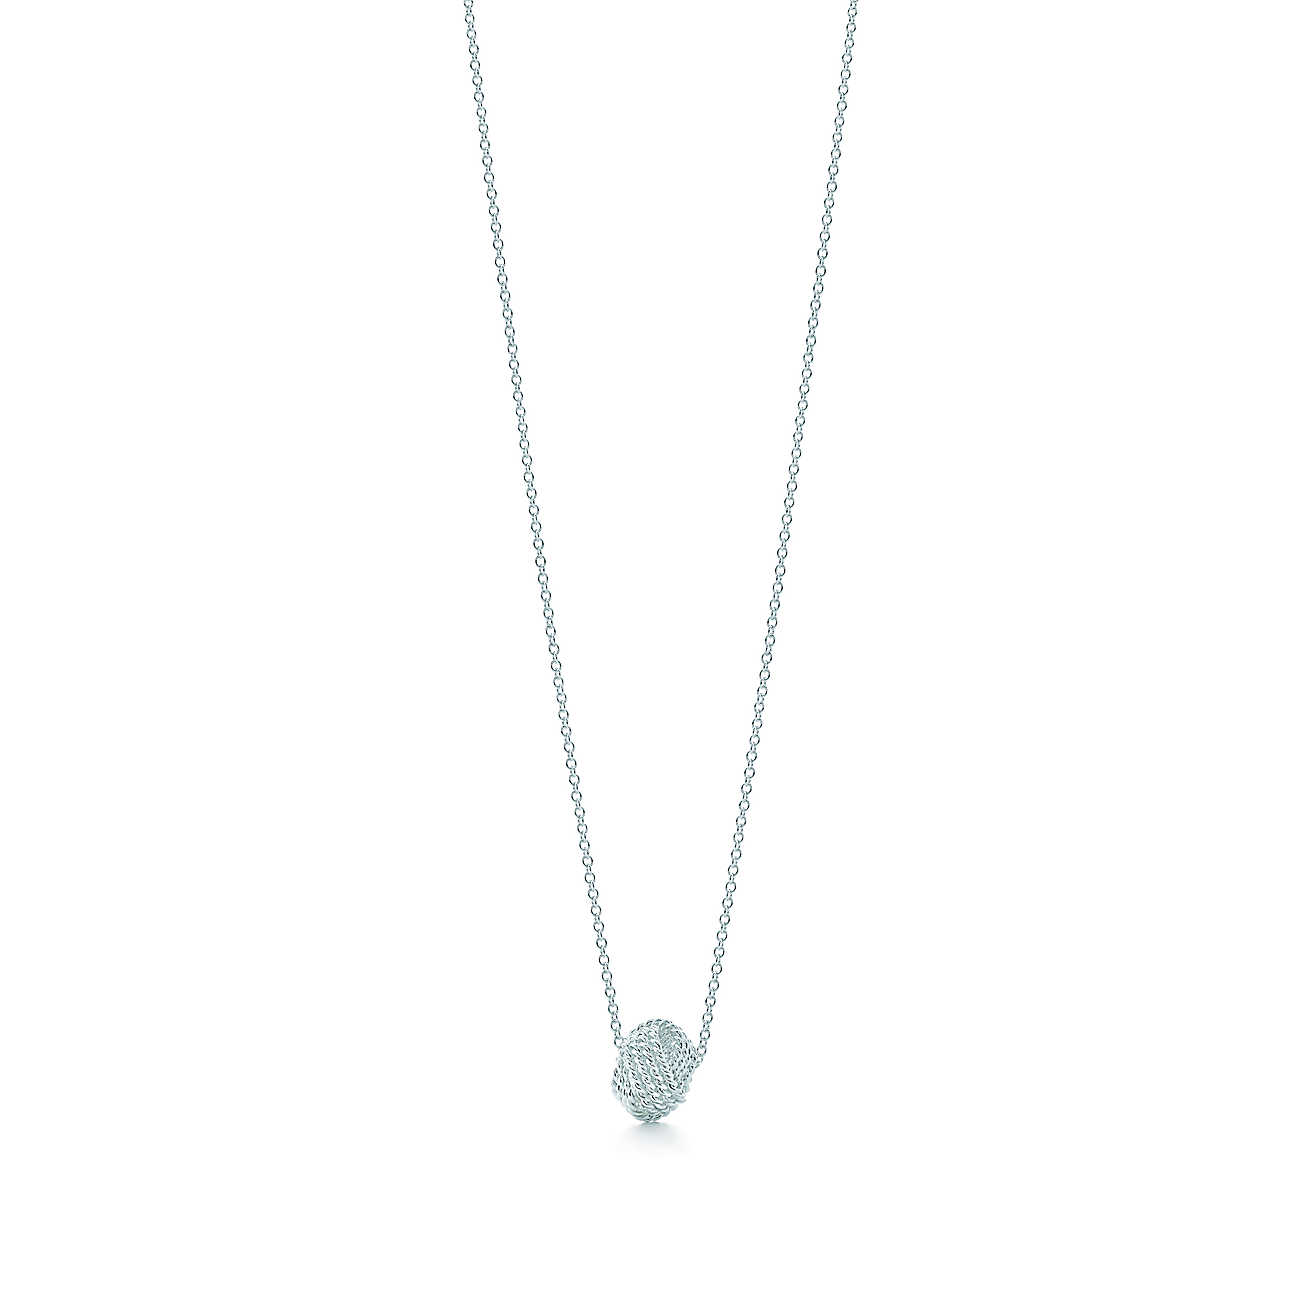 tiffany-twistknot-pendant-29849498_907160_ED